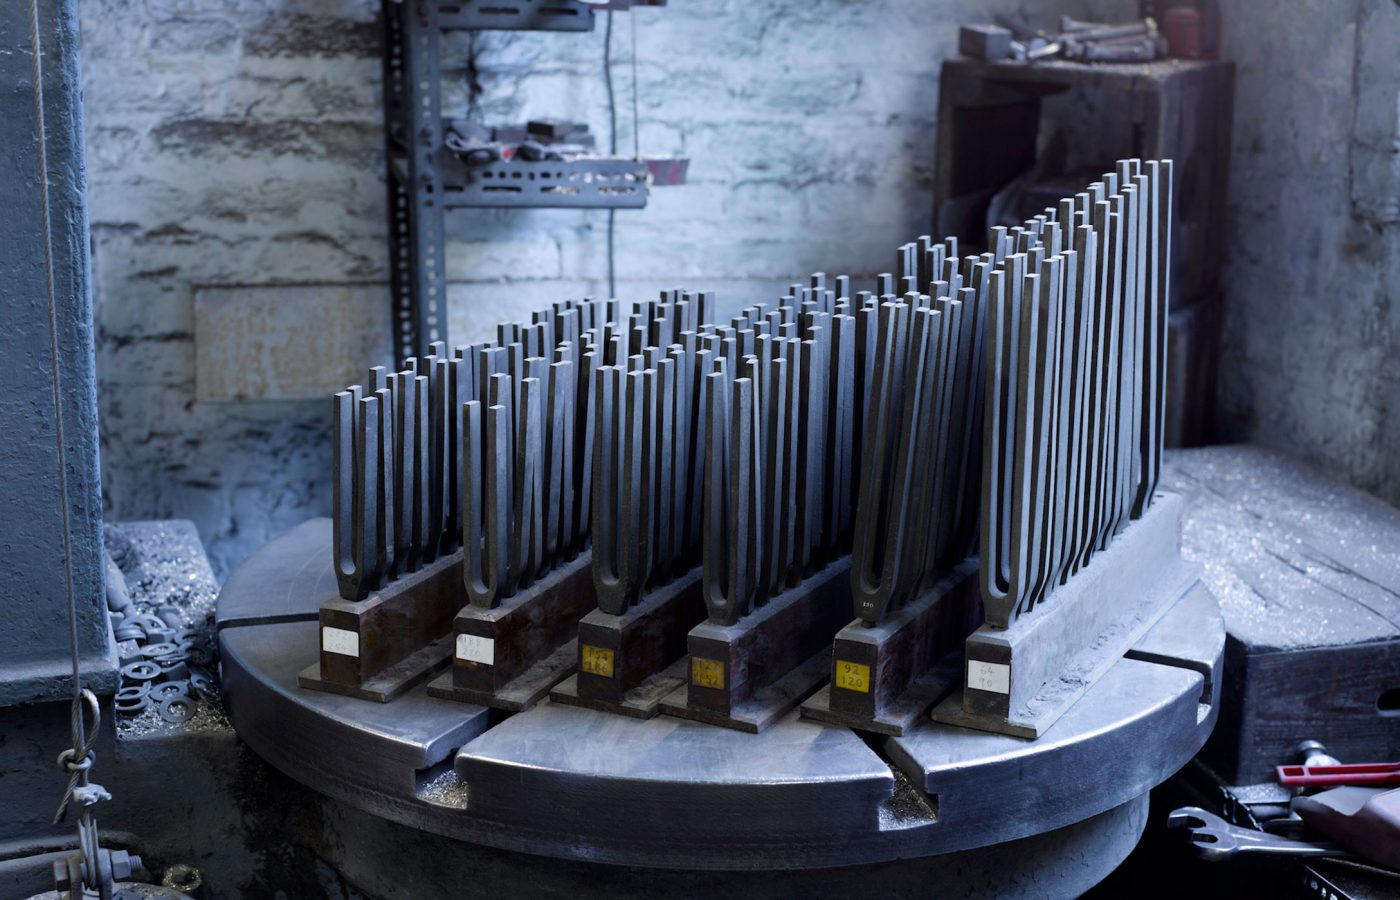 Whitechapel Bell Foundry 20th century tuning forks